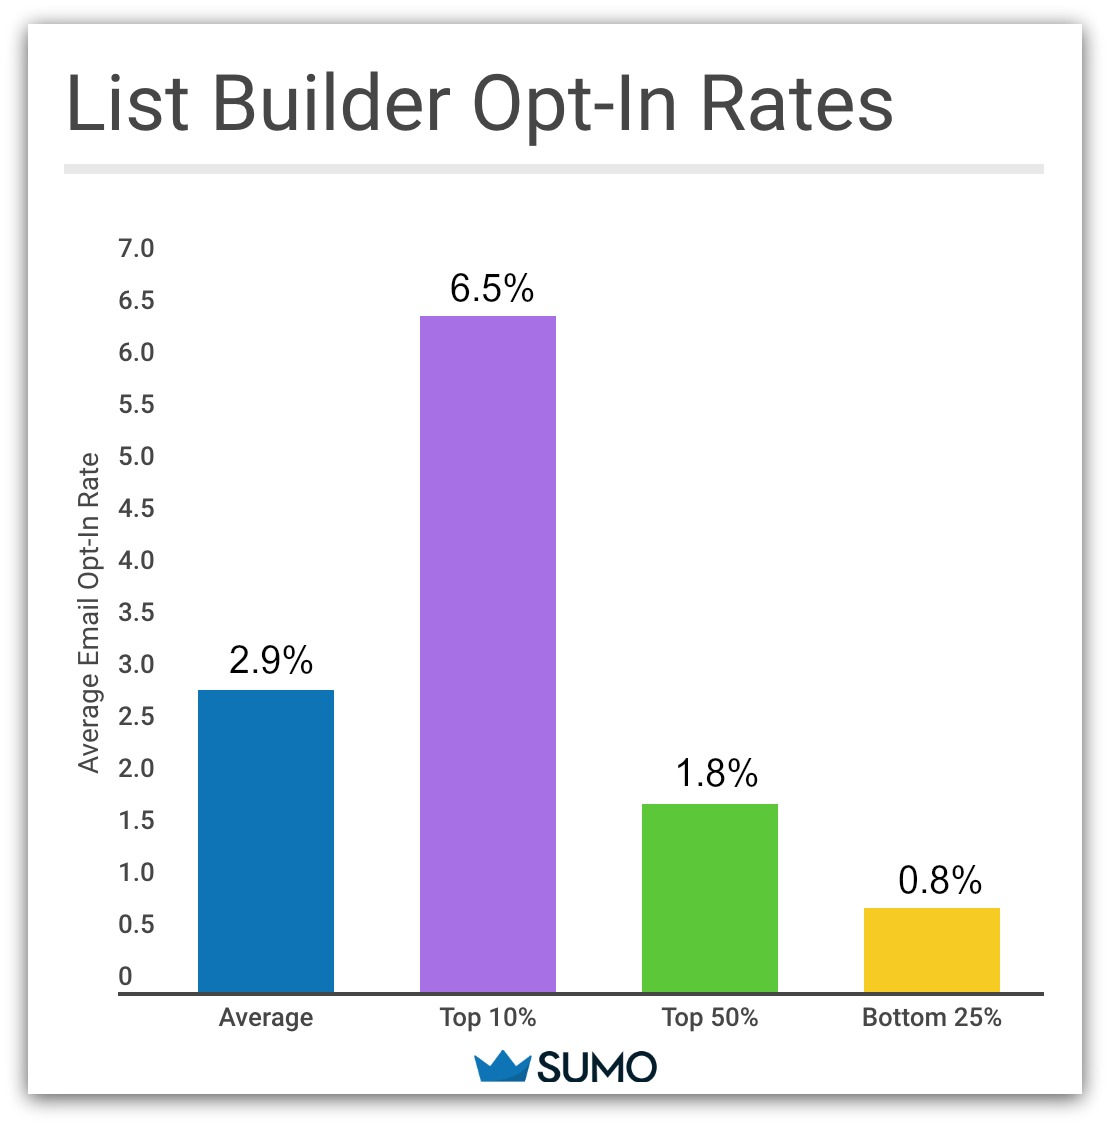 Graph showing list builder opt-in rates